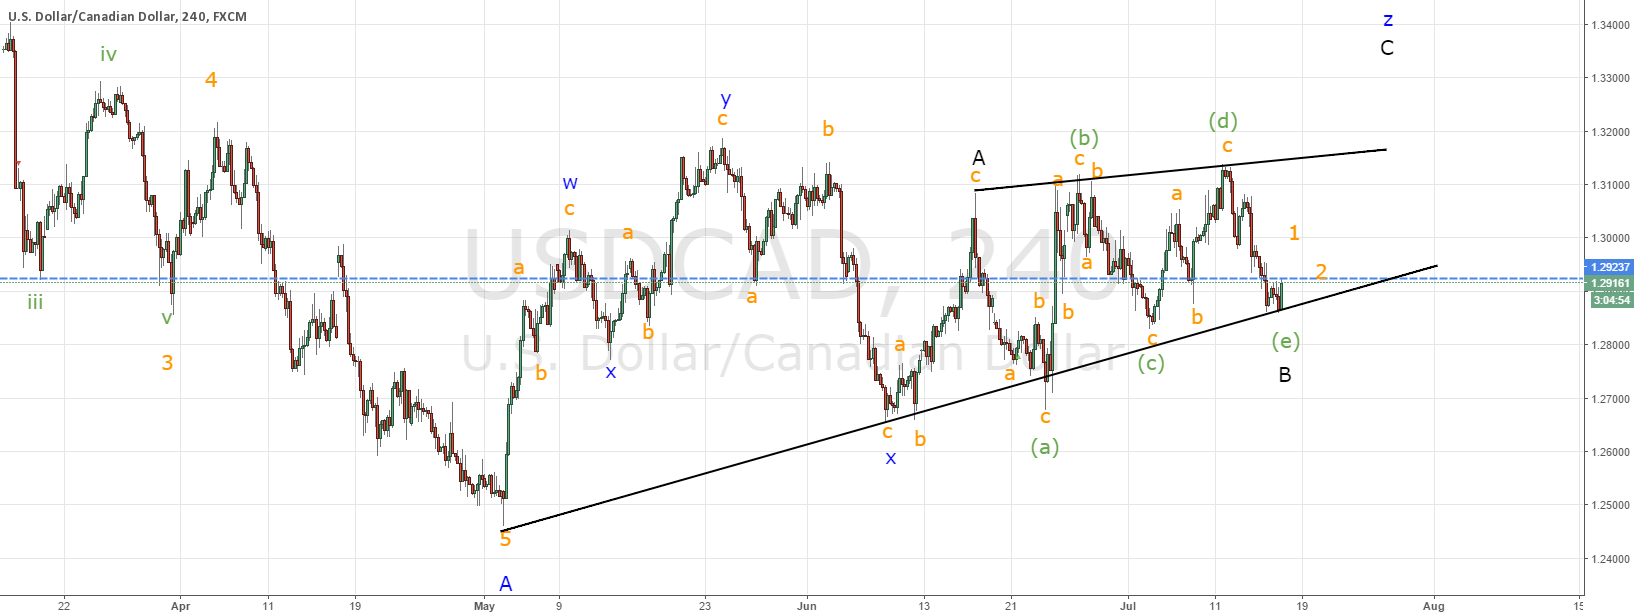 USDCAD scenario both for bulls and bears